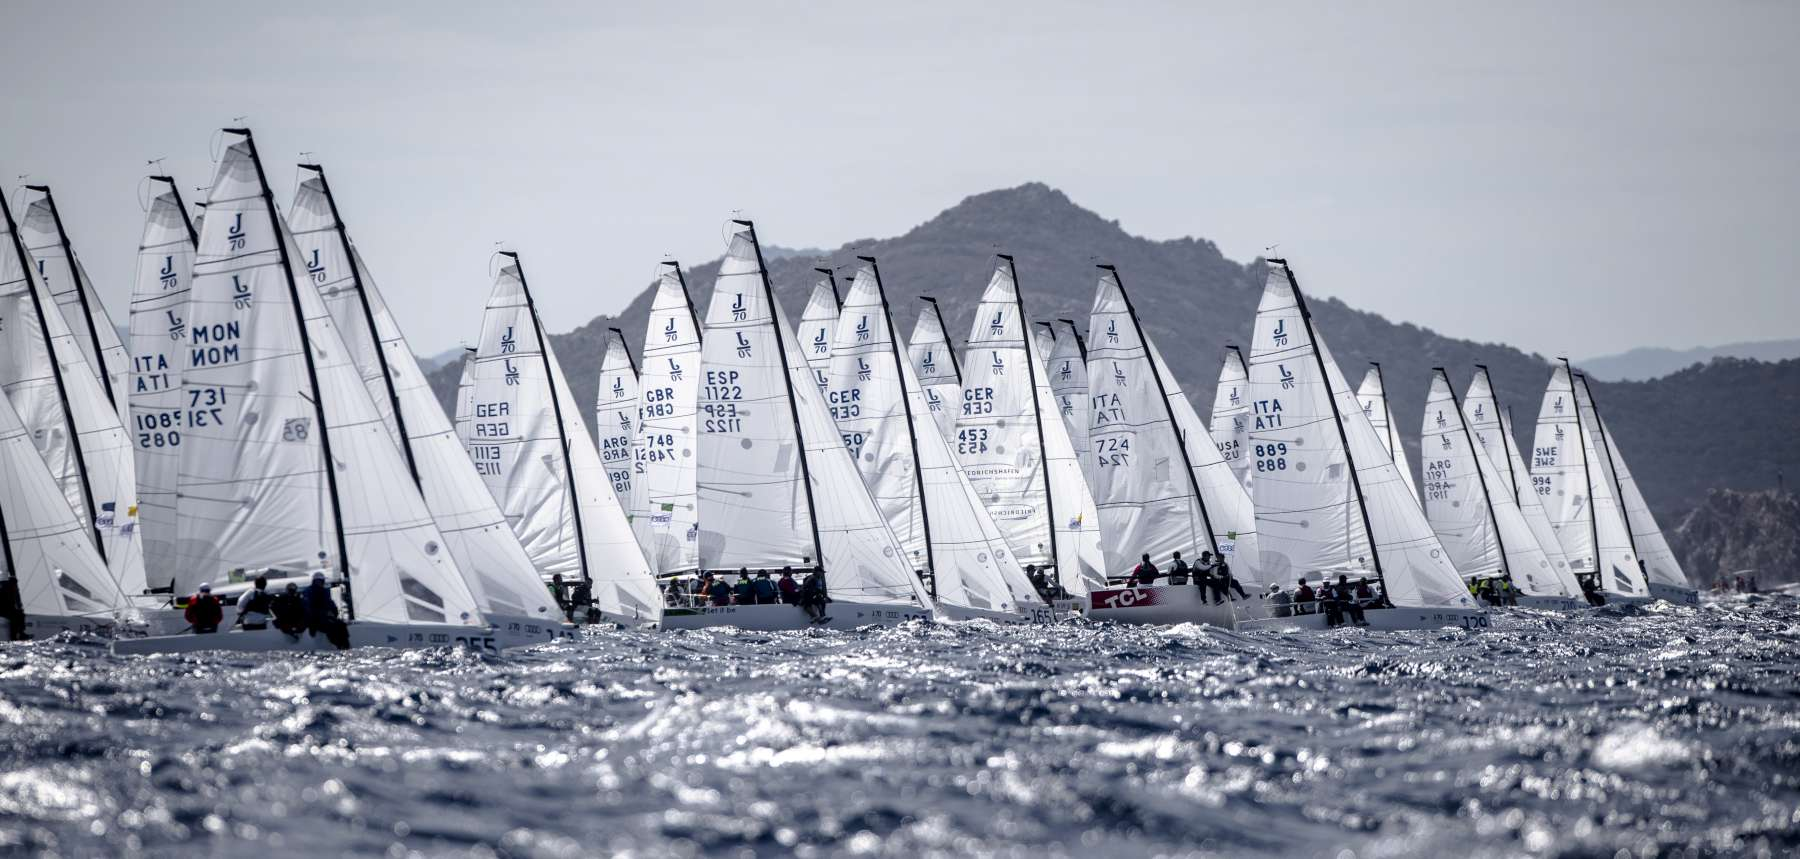 Audi J/70 World Championship - Final Day Video online - NEWS - Yacht Club Costa Smeralda